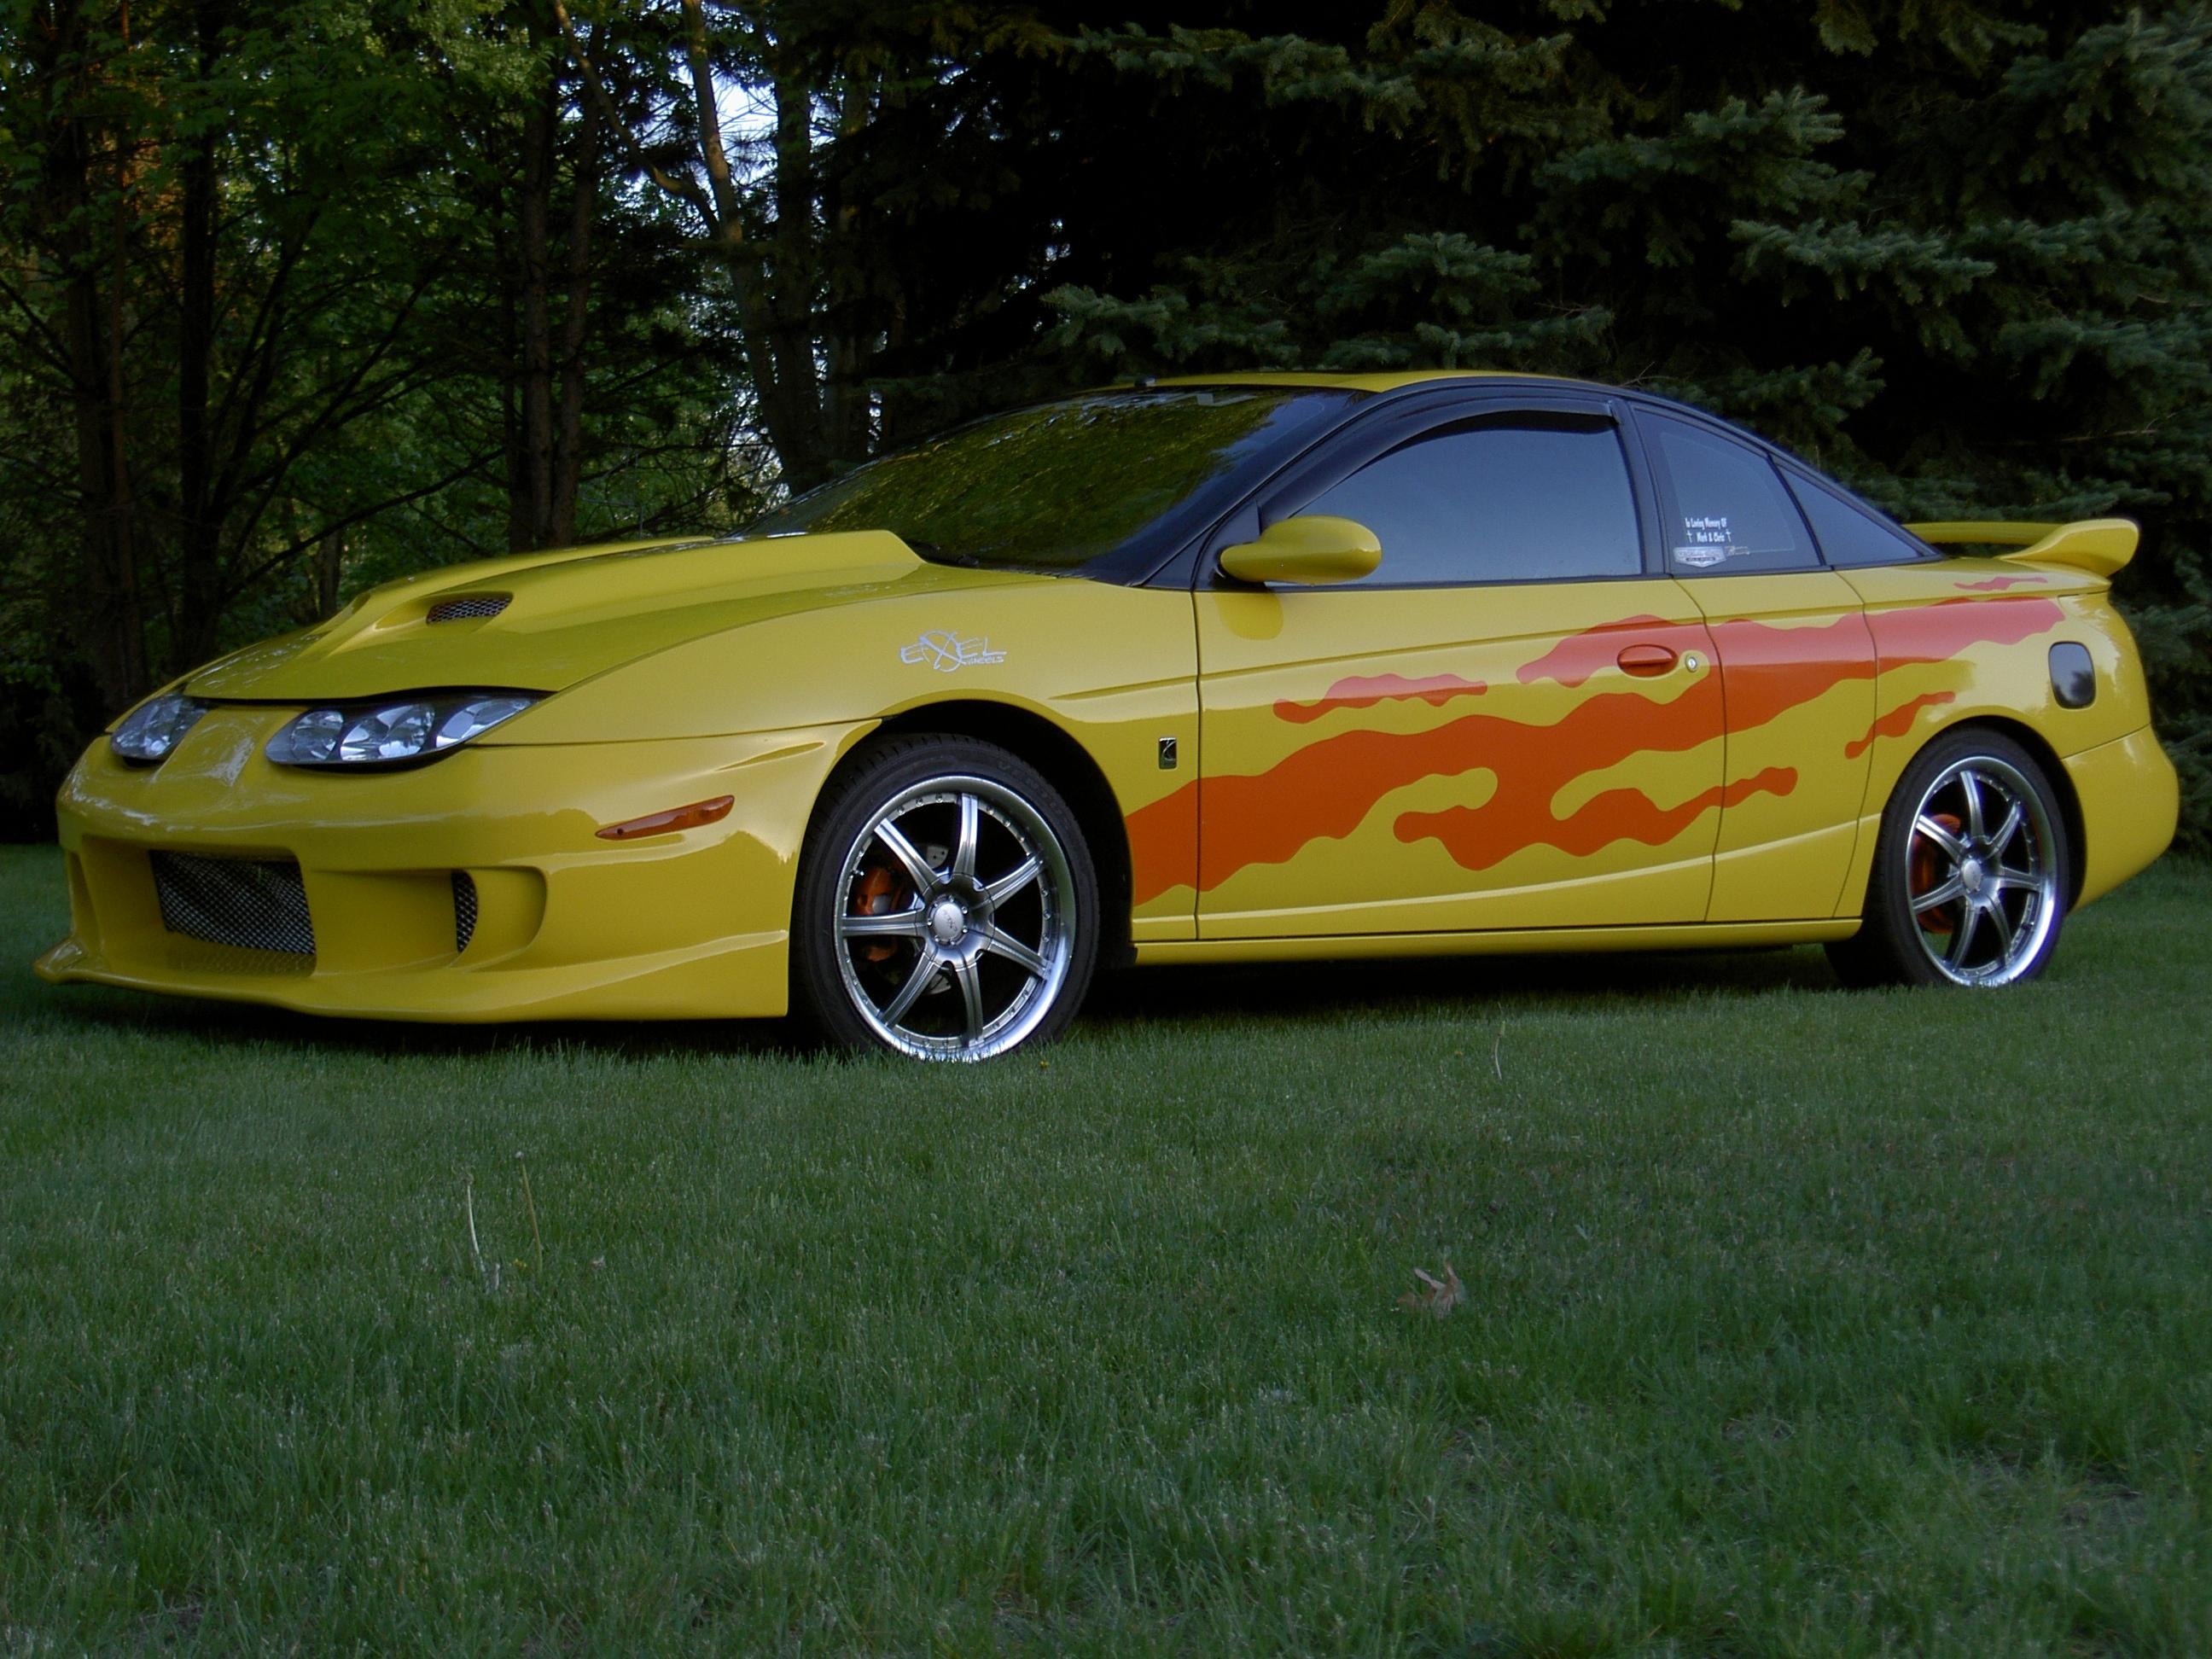 2001 Saturn S-series - Information And Photos